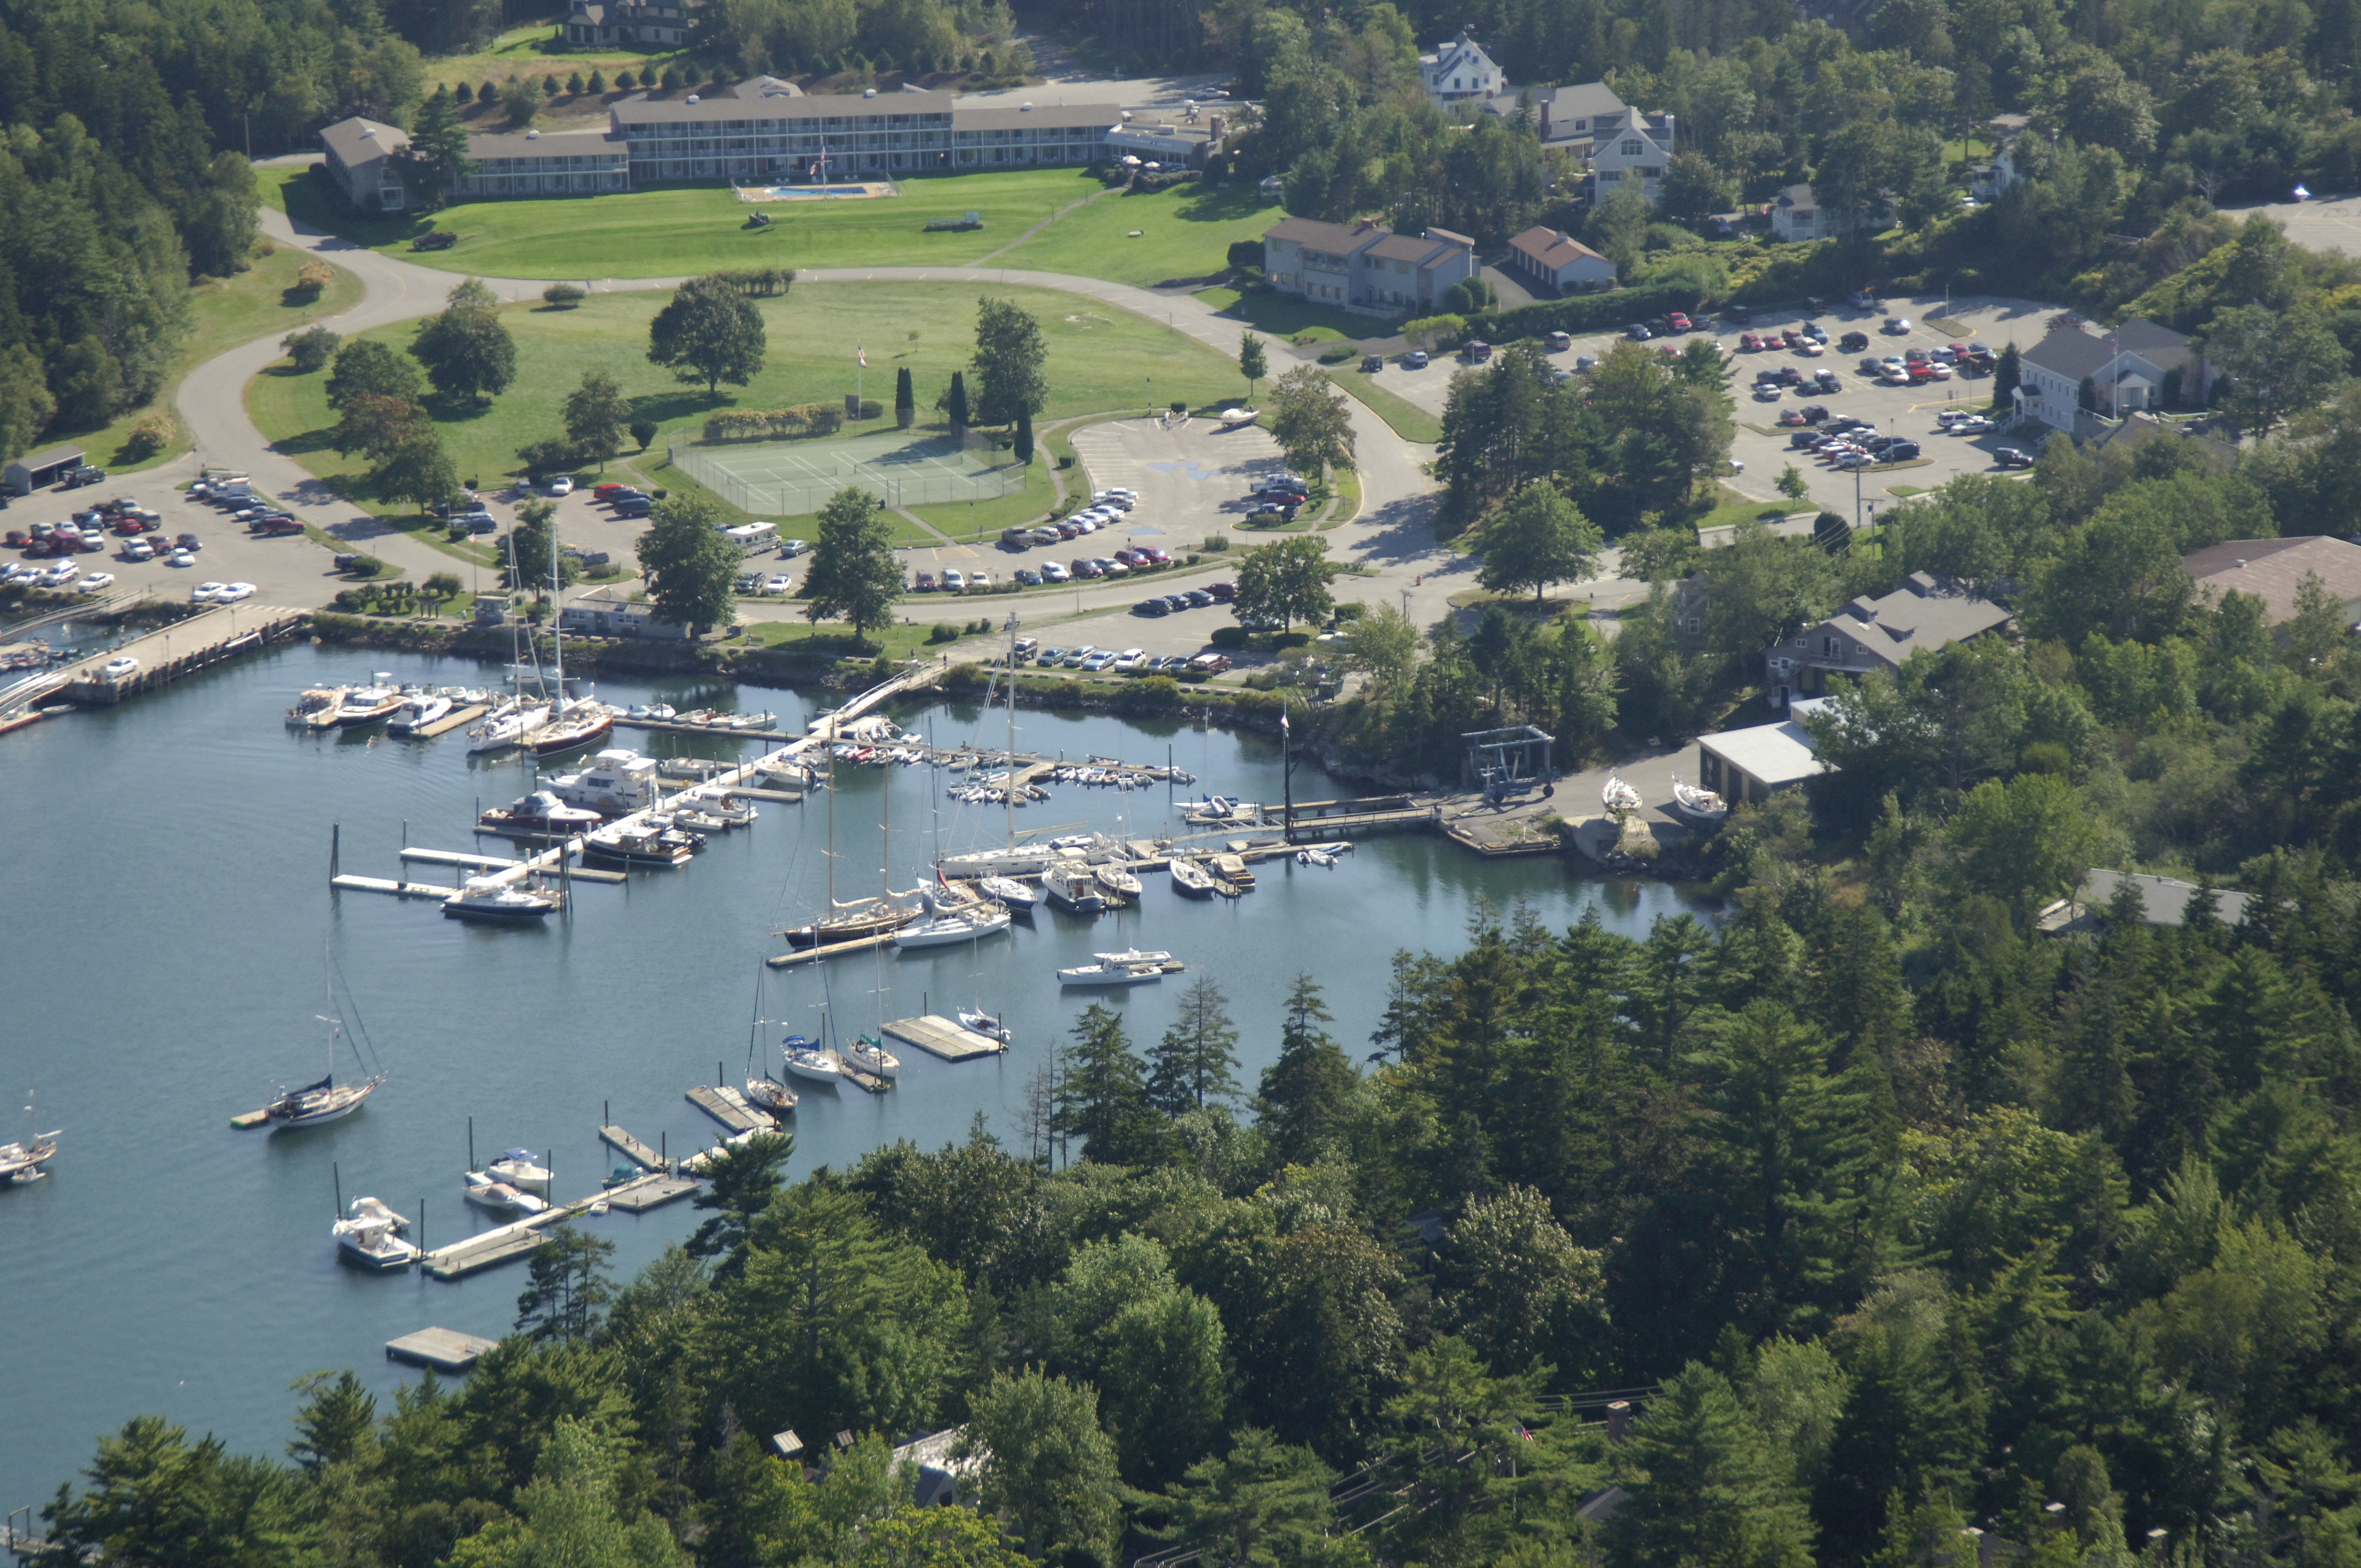 northeast harbor Zillow has 32 homes for sale in northeast harbor mount desert view listing photos, review sales history, and use our detailed real estate filters to find the perfect place.